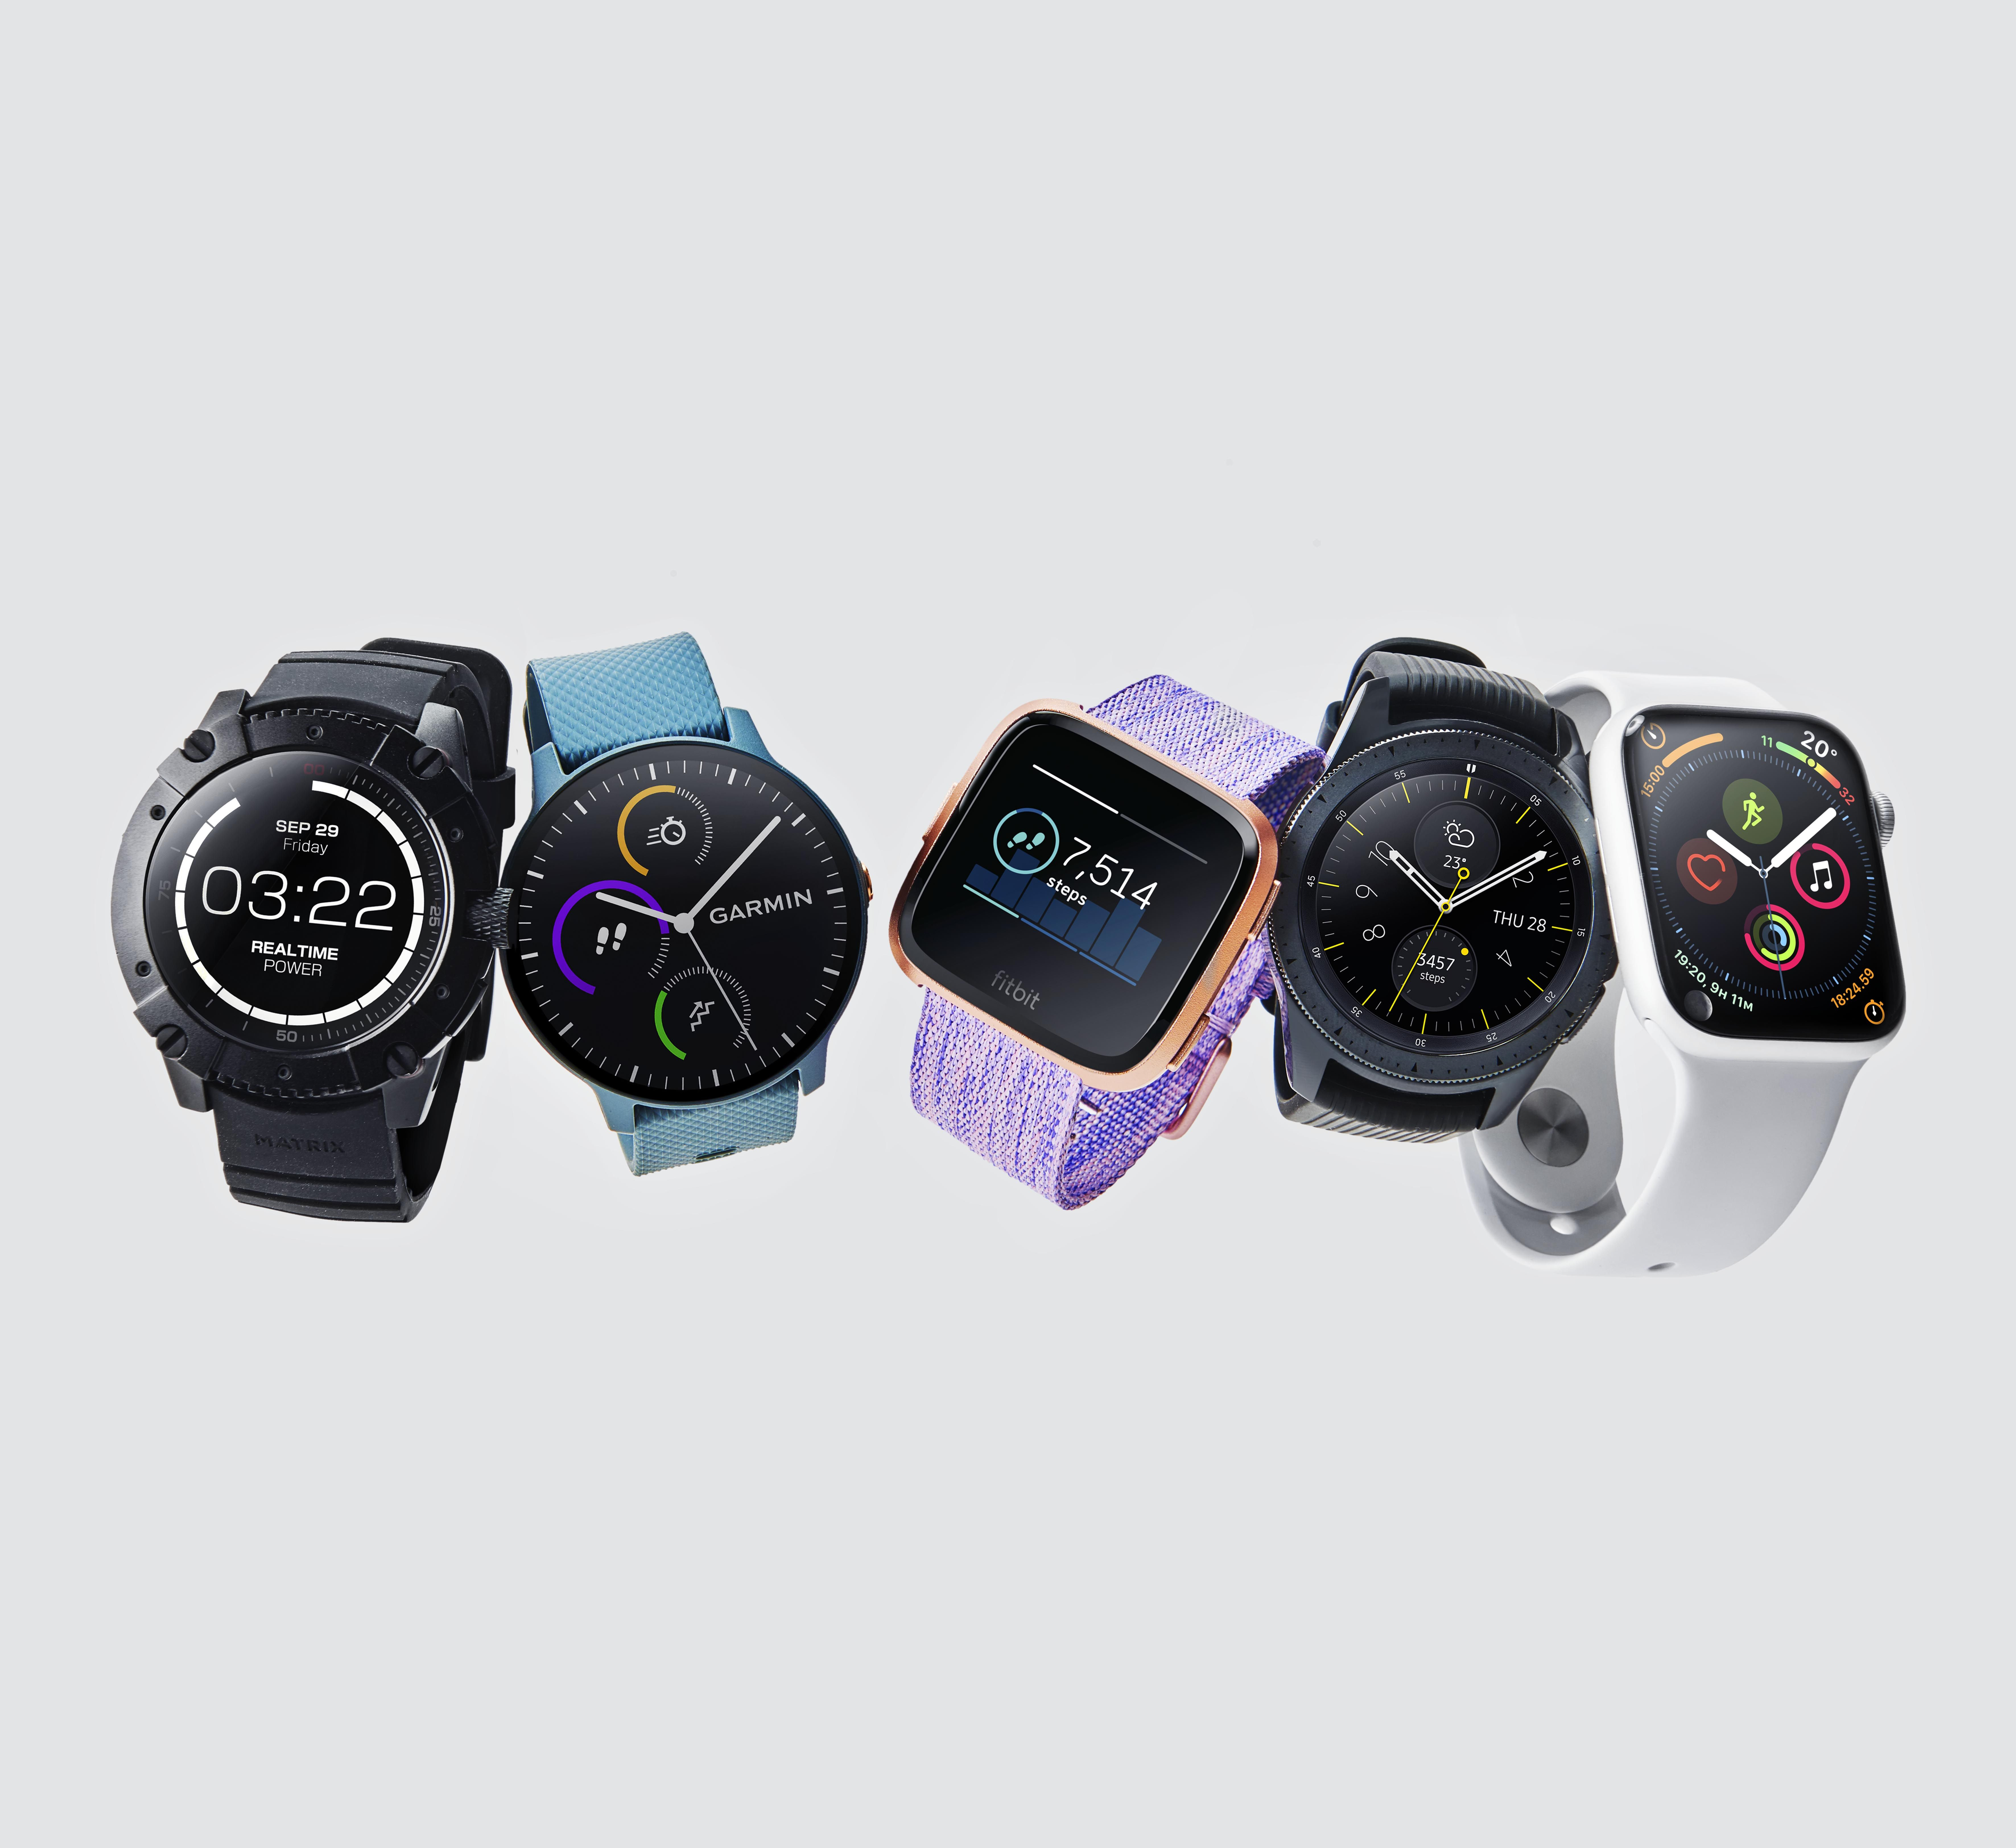 5 of 2019's best smartwatches, tried and tested